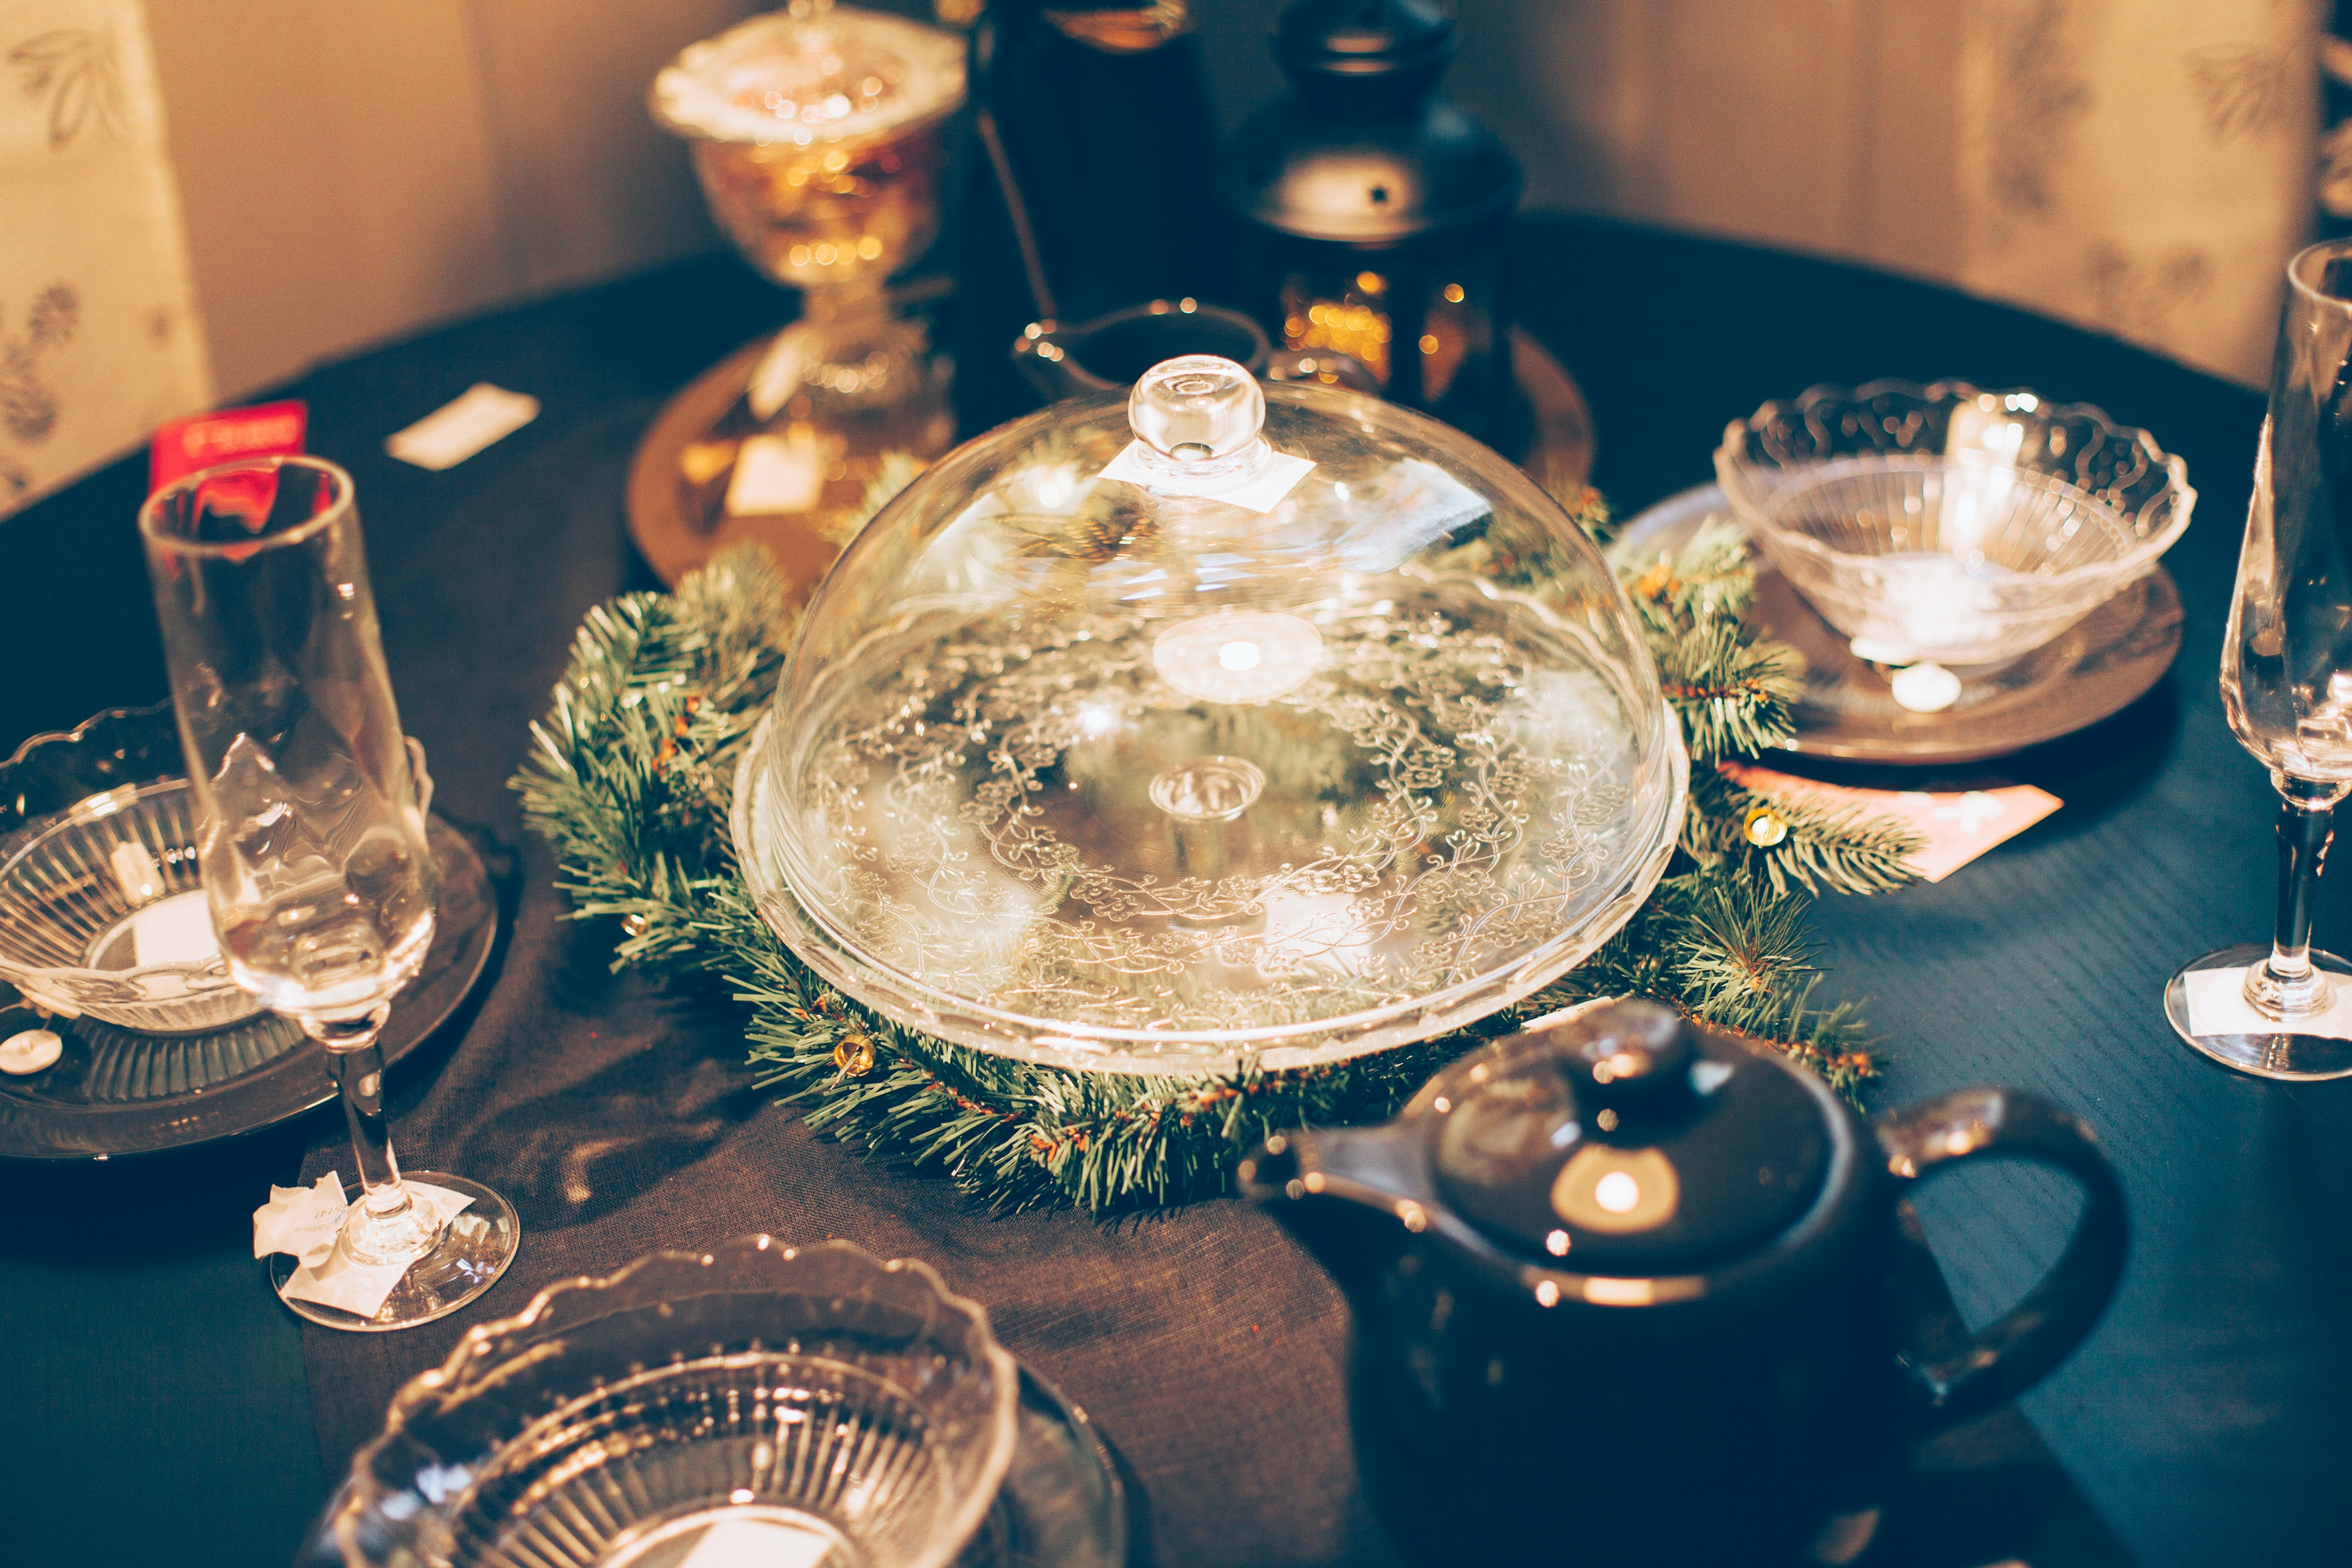 clear glass bowls on table